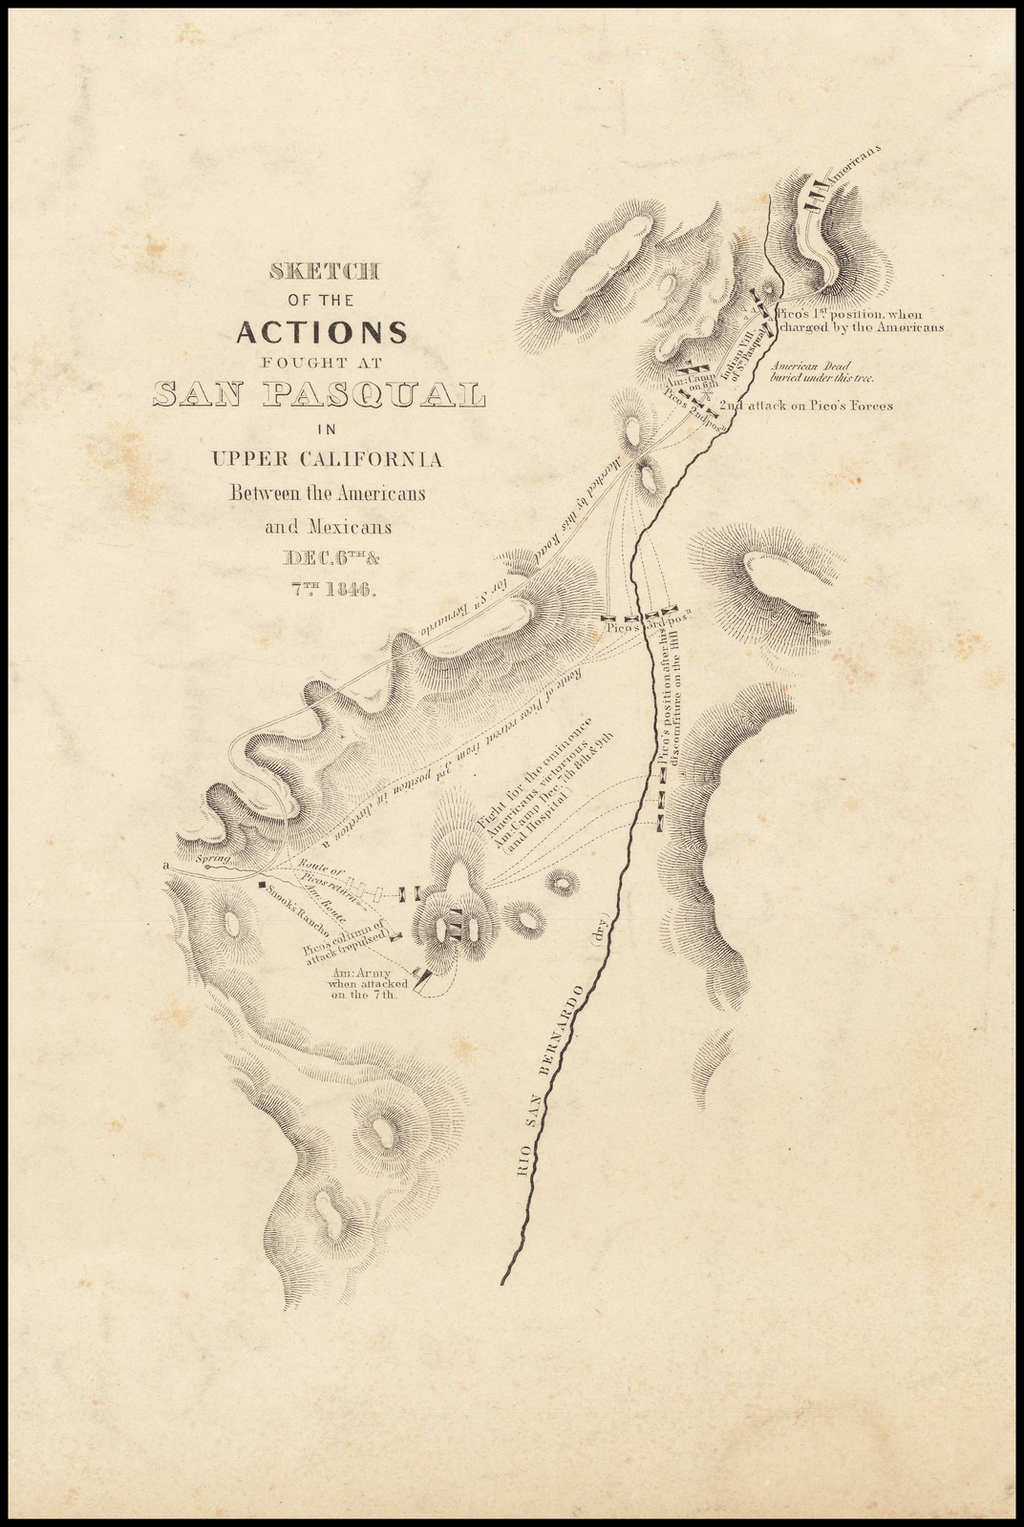 Sketch of the Actions Fought At San Pasqual in Upper California Between the Americans and Mexicans Dec. 6th & 7th 1846 By William Hemsley Emory